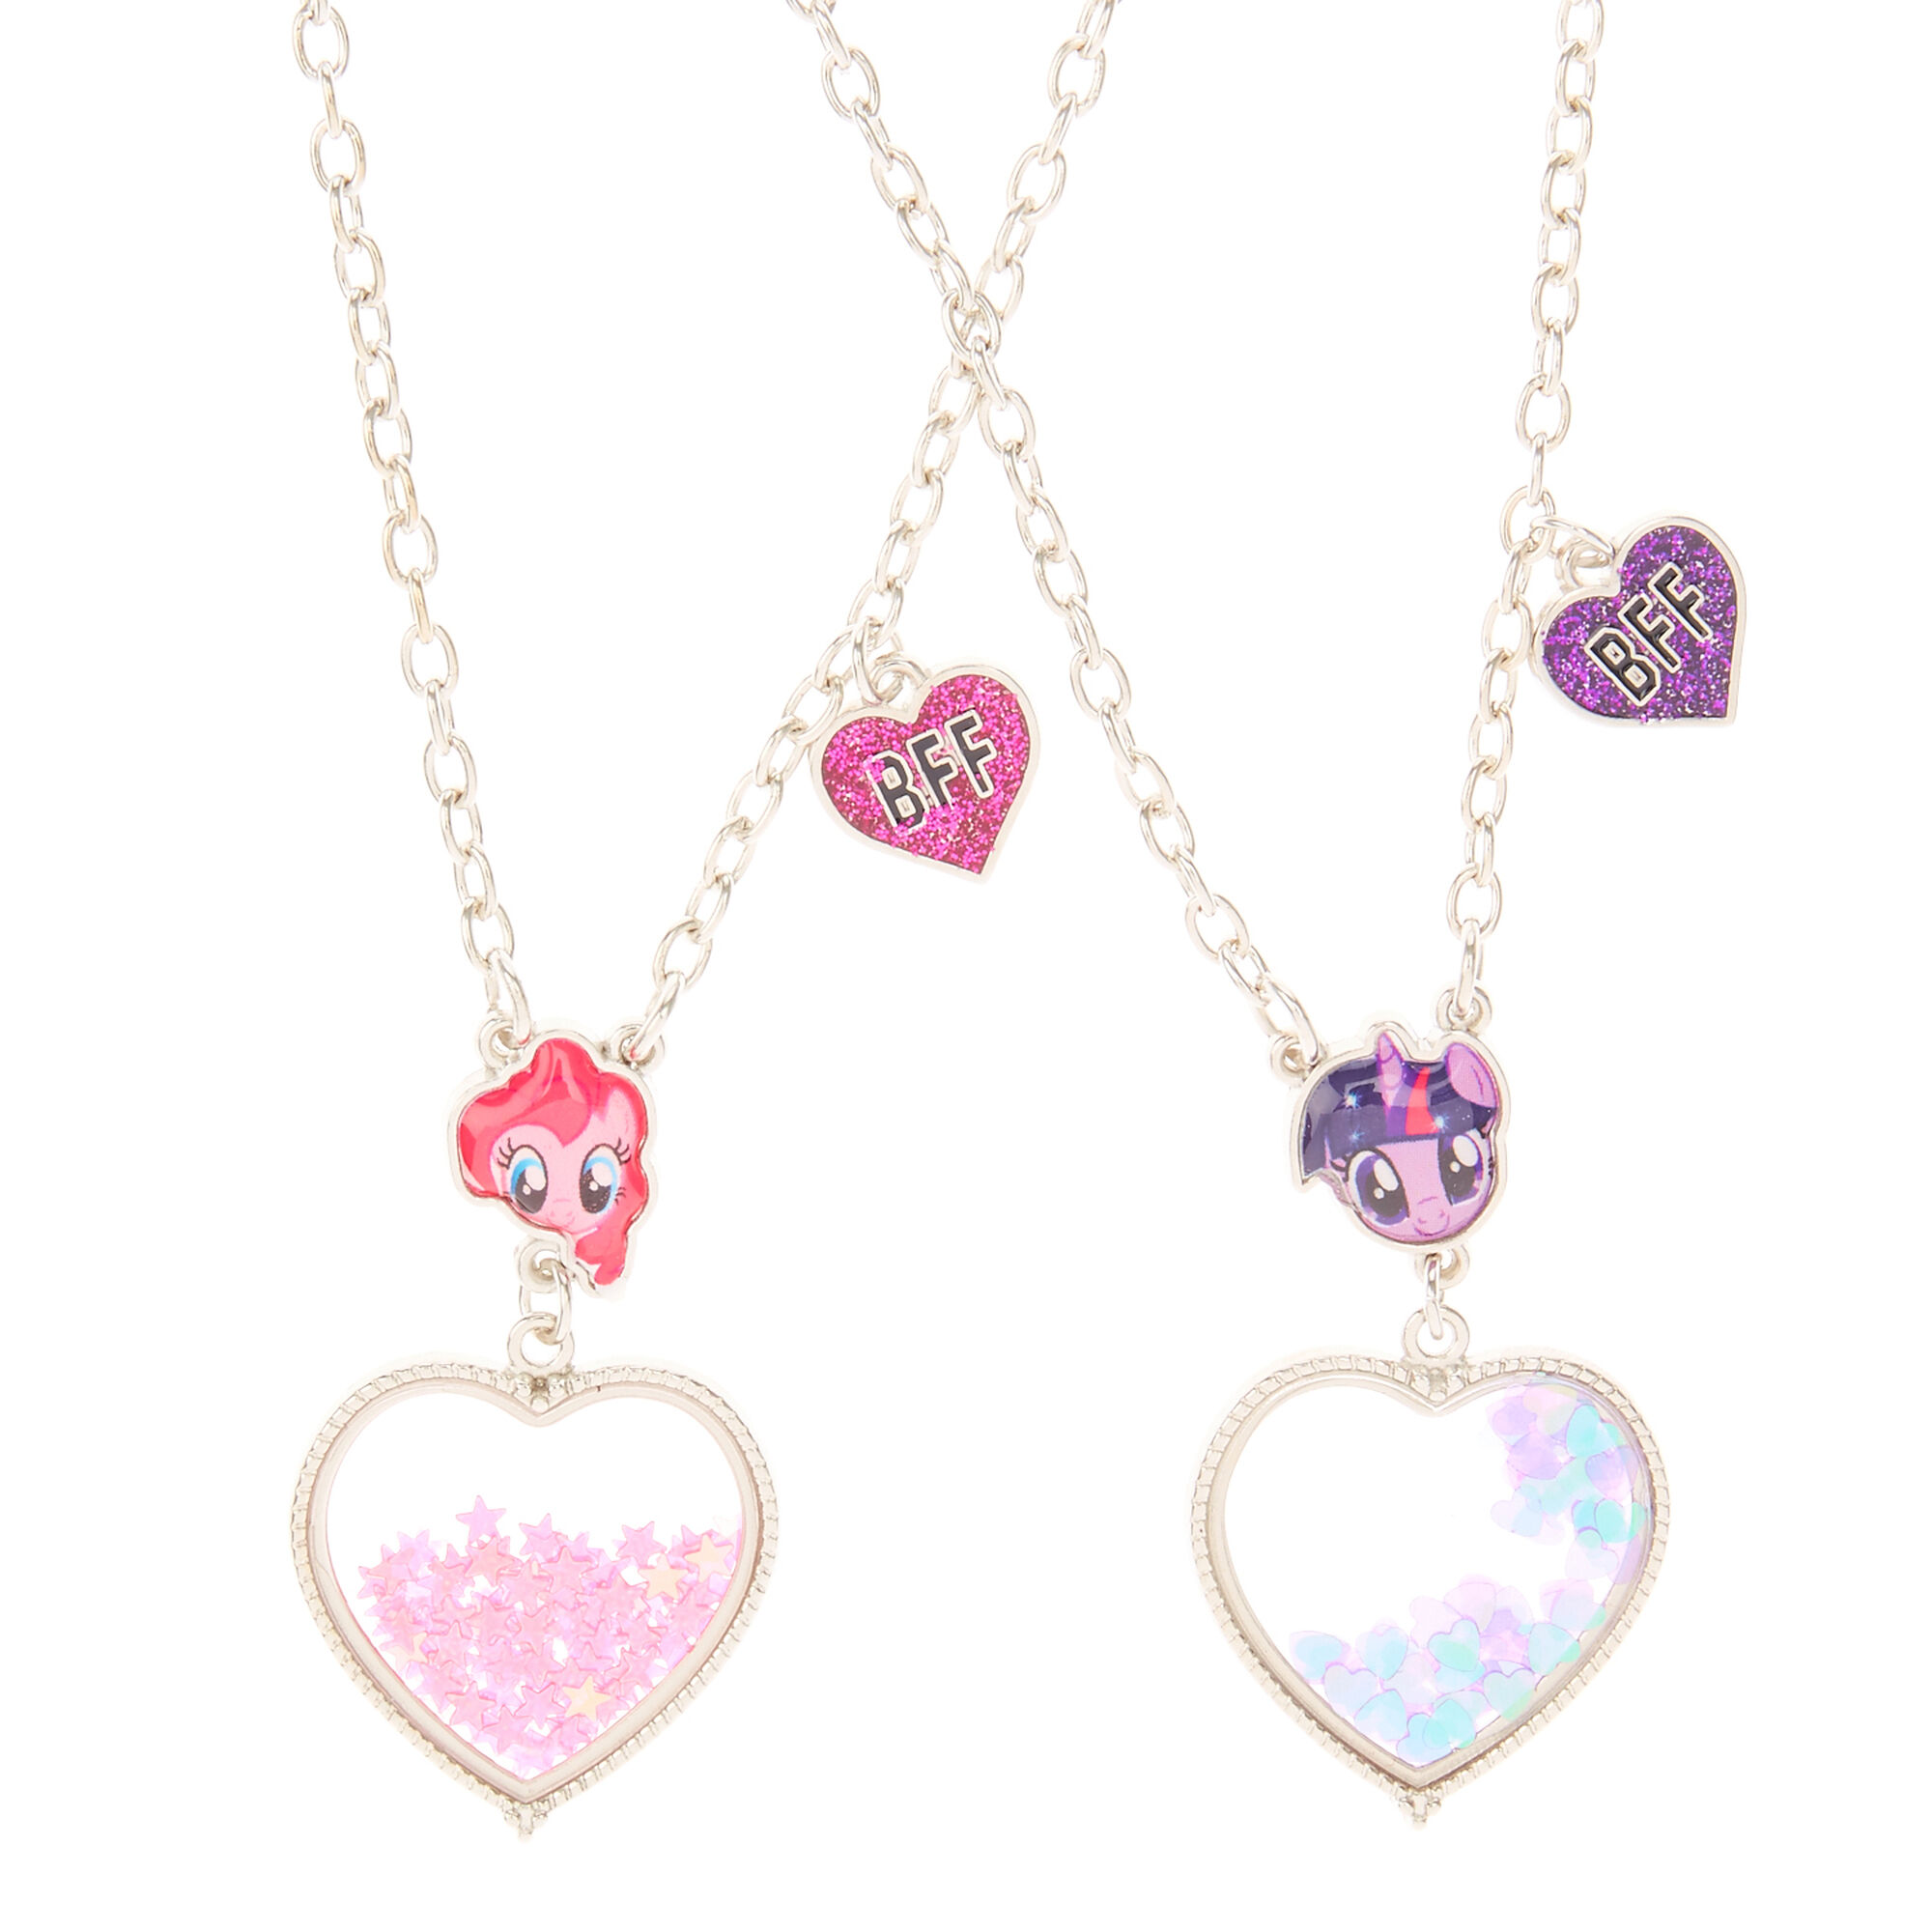 My little pony bff shaker necklaces claires my little pony bff shaker necklaces aloadofball Gallery